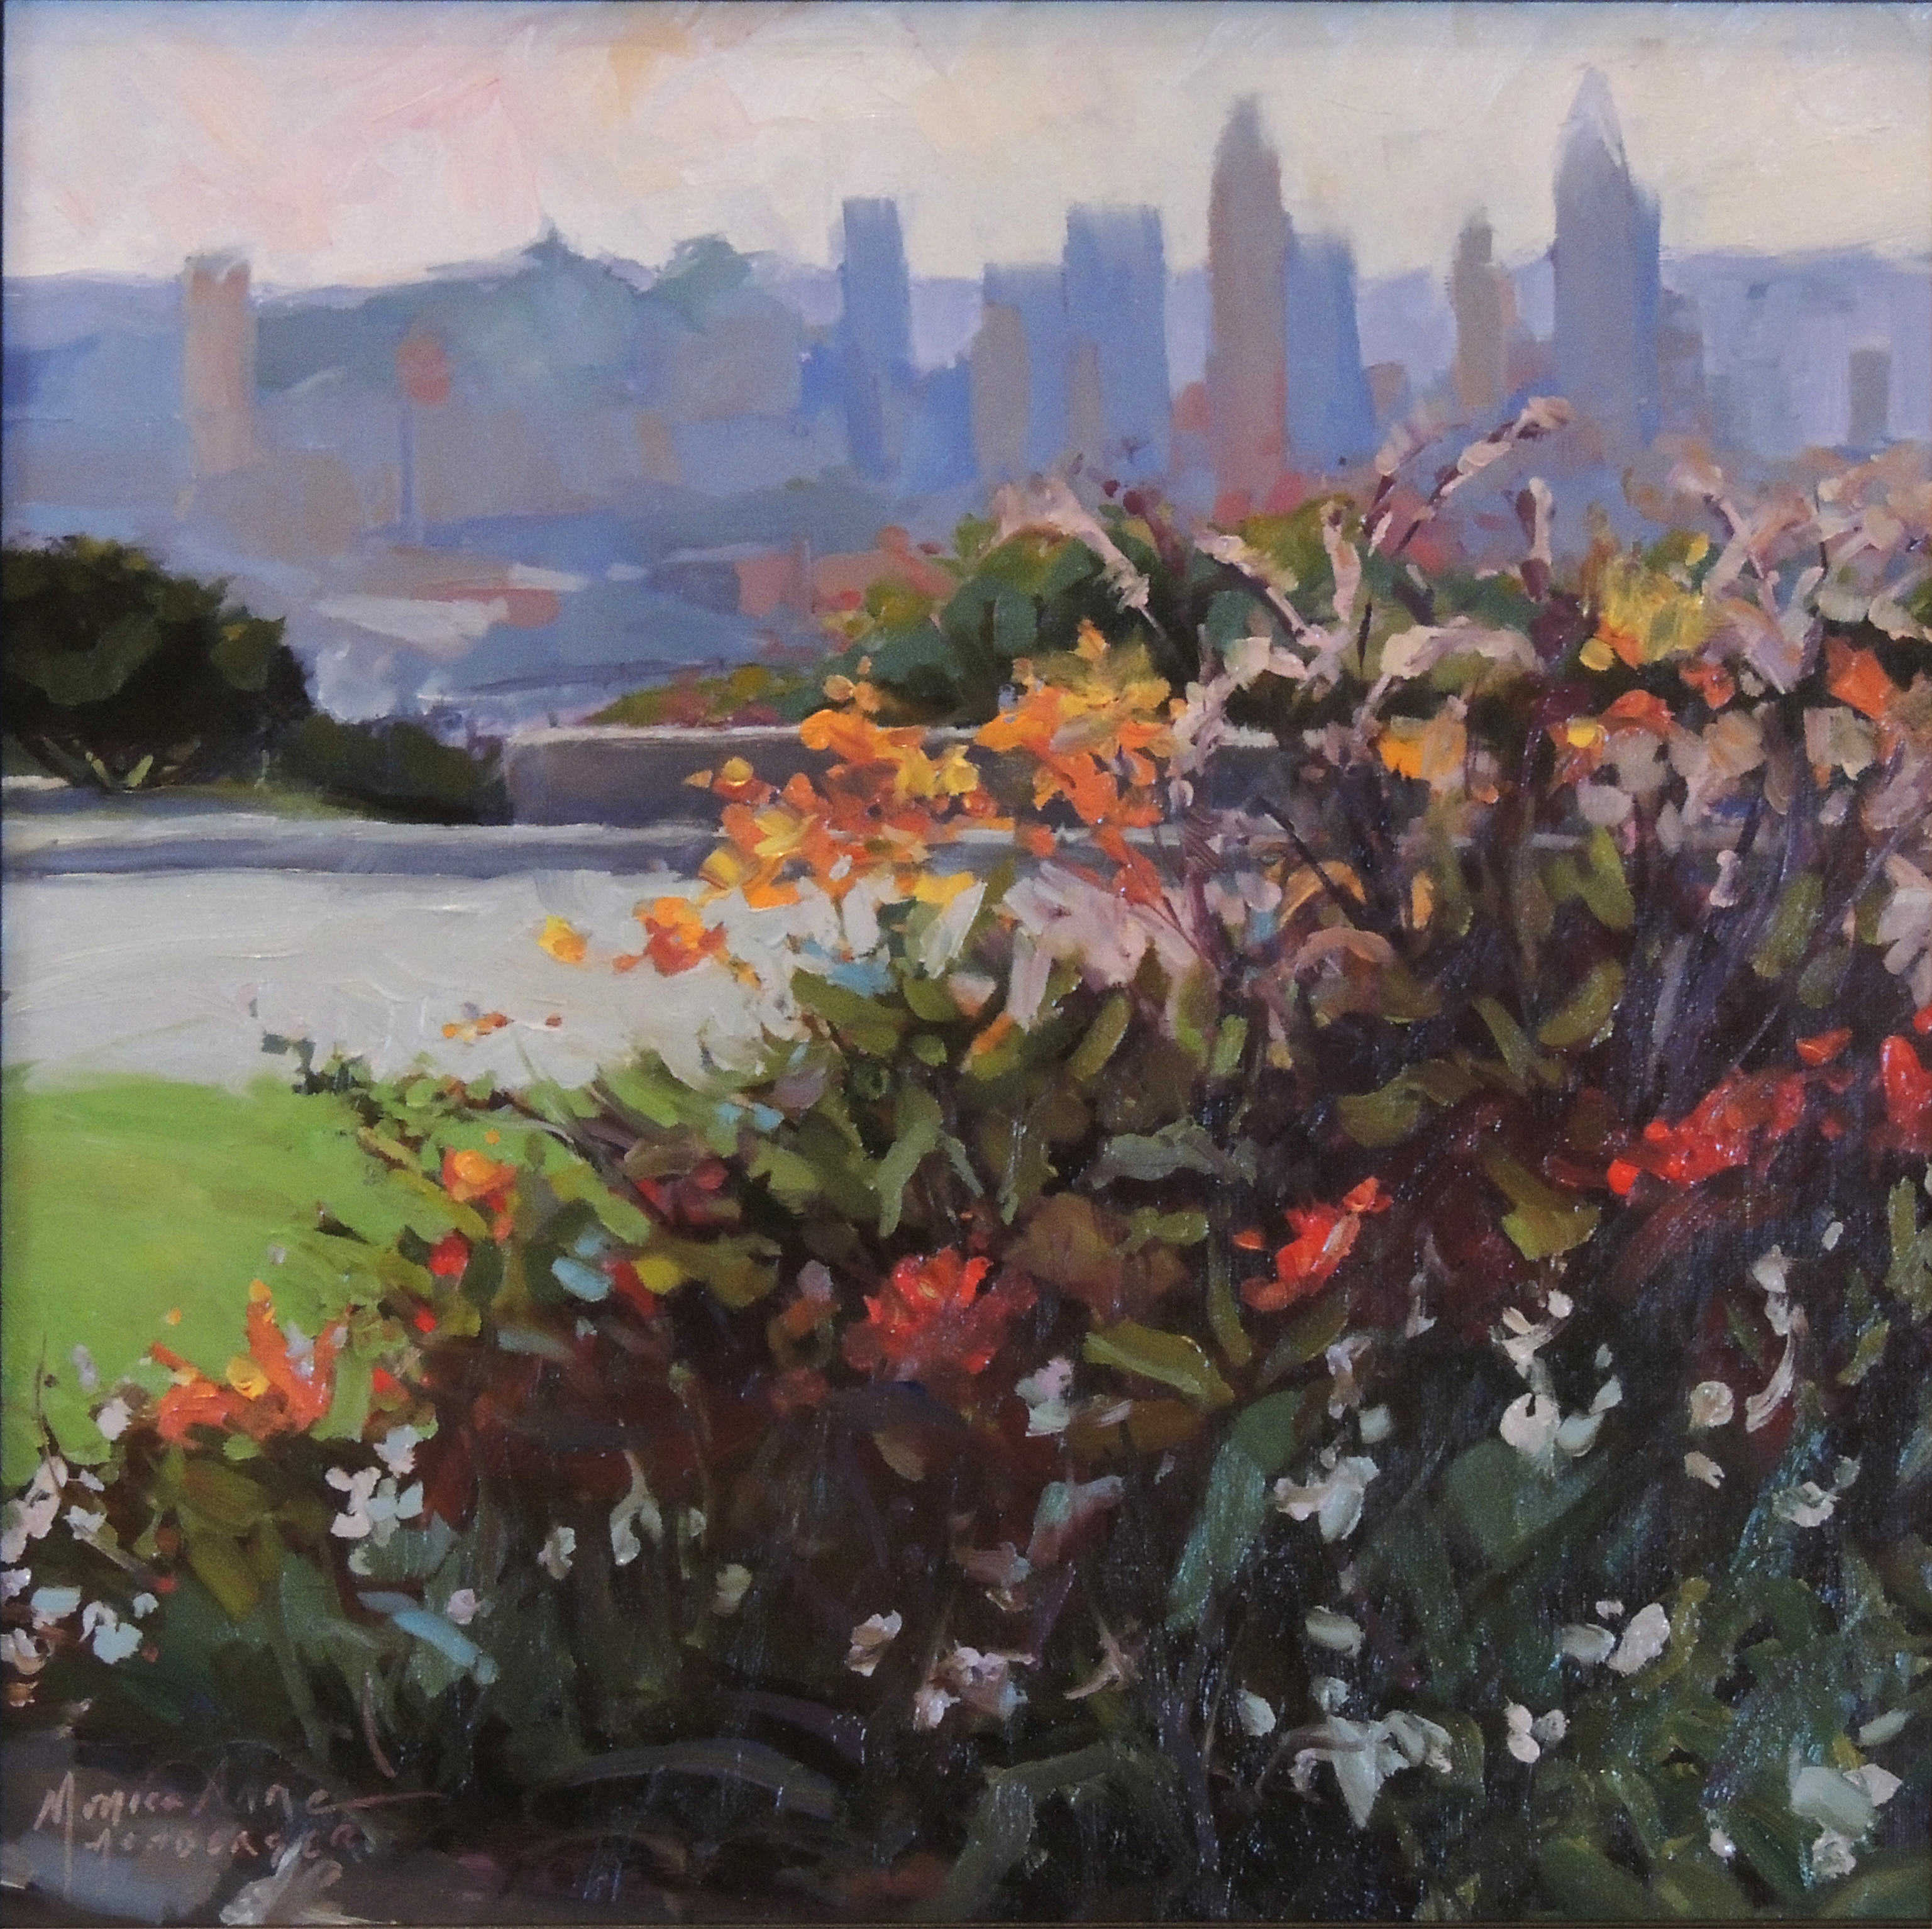 Monica Anne Achberger | FLOWER CITY, MT. ECHO PARK | oil on linen | frame size 16x16